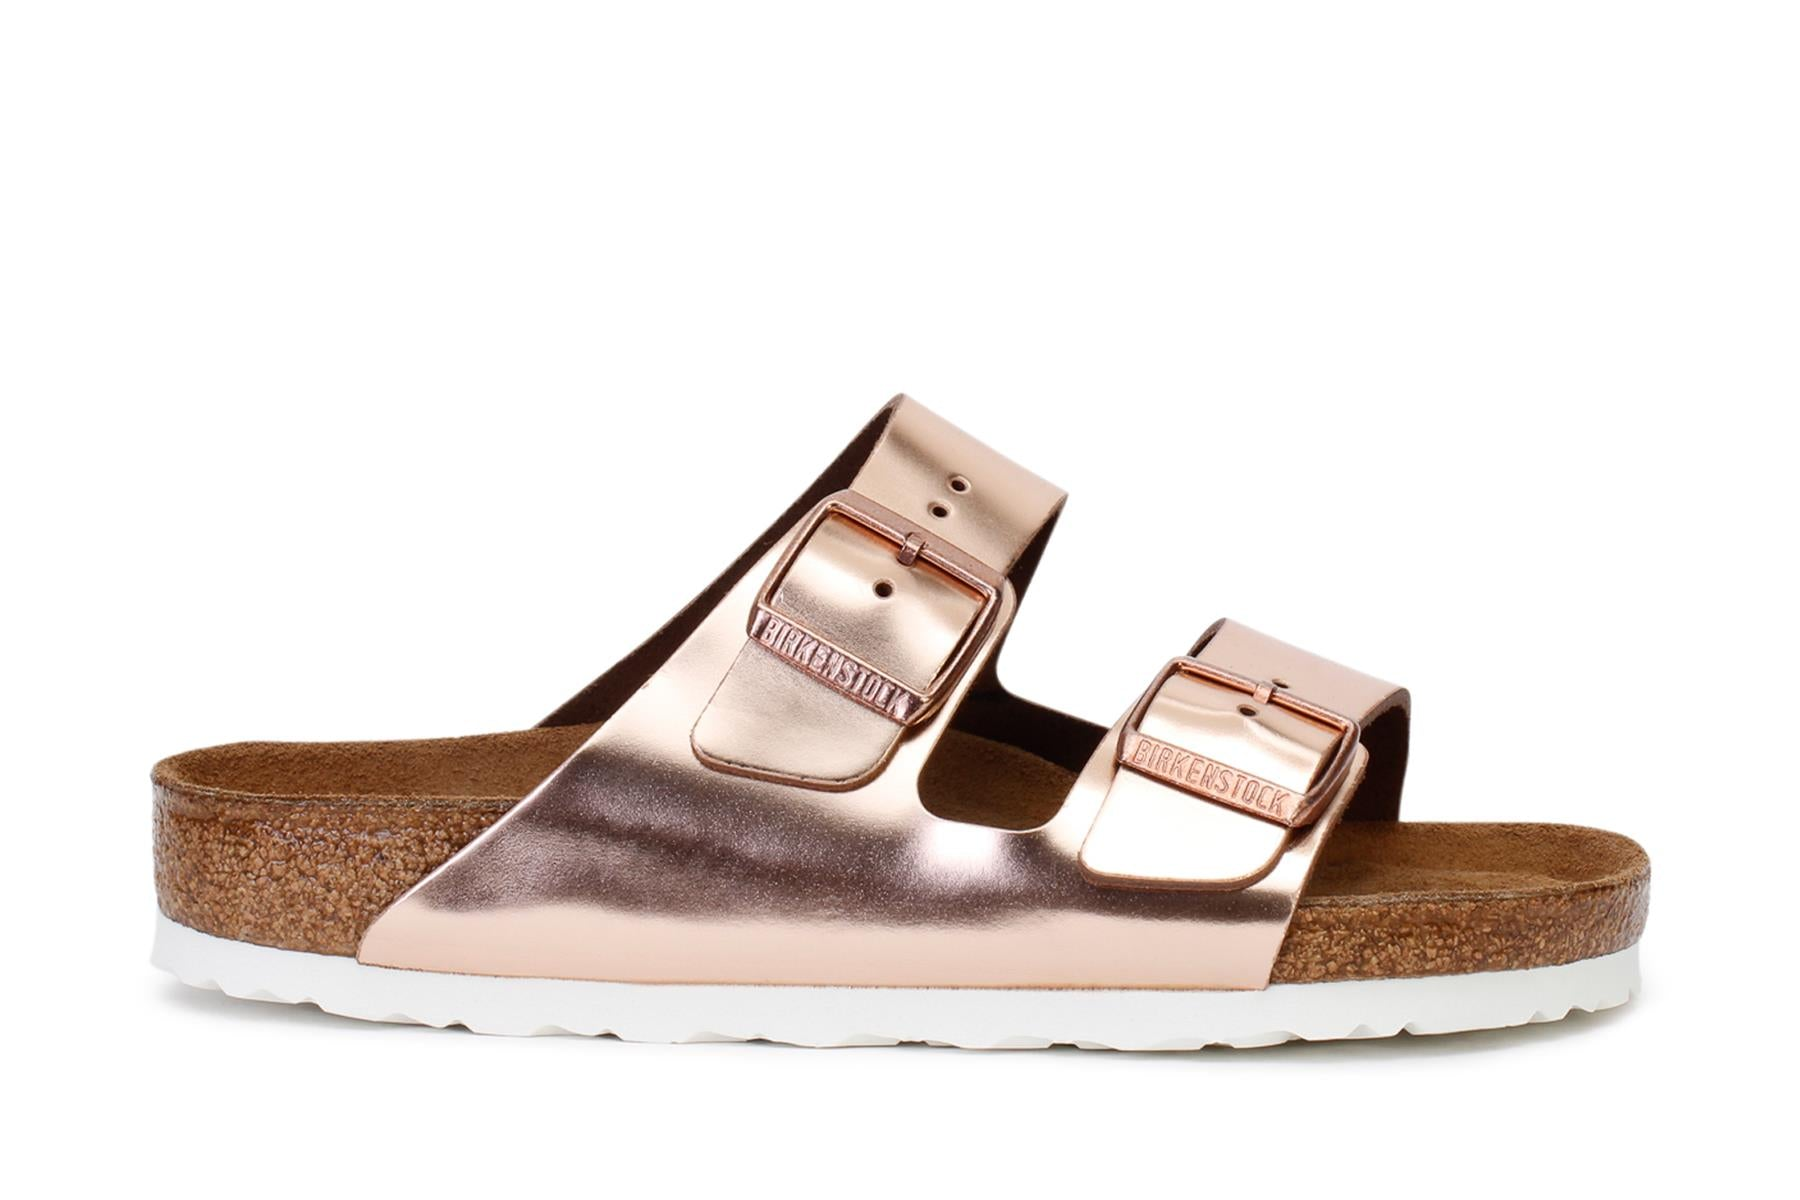 birkenstock-womens-slide-sandals-arizona-bs-metallic-copper-952091-regular-fit-main